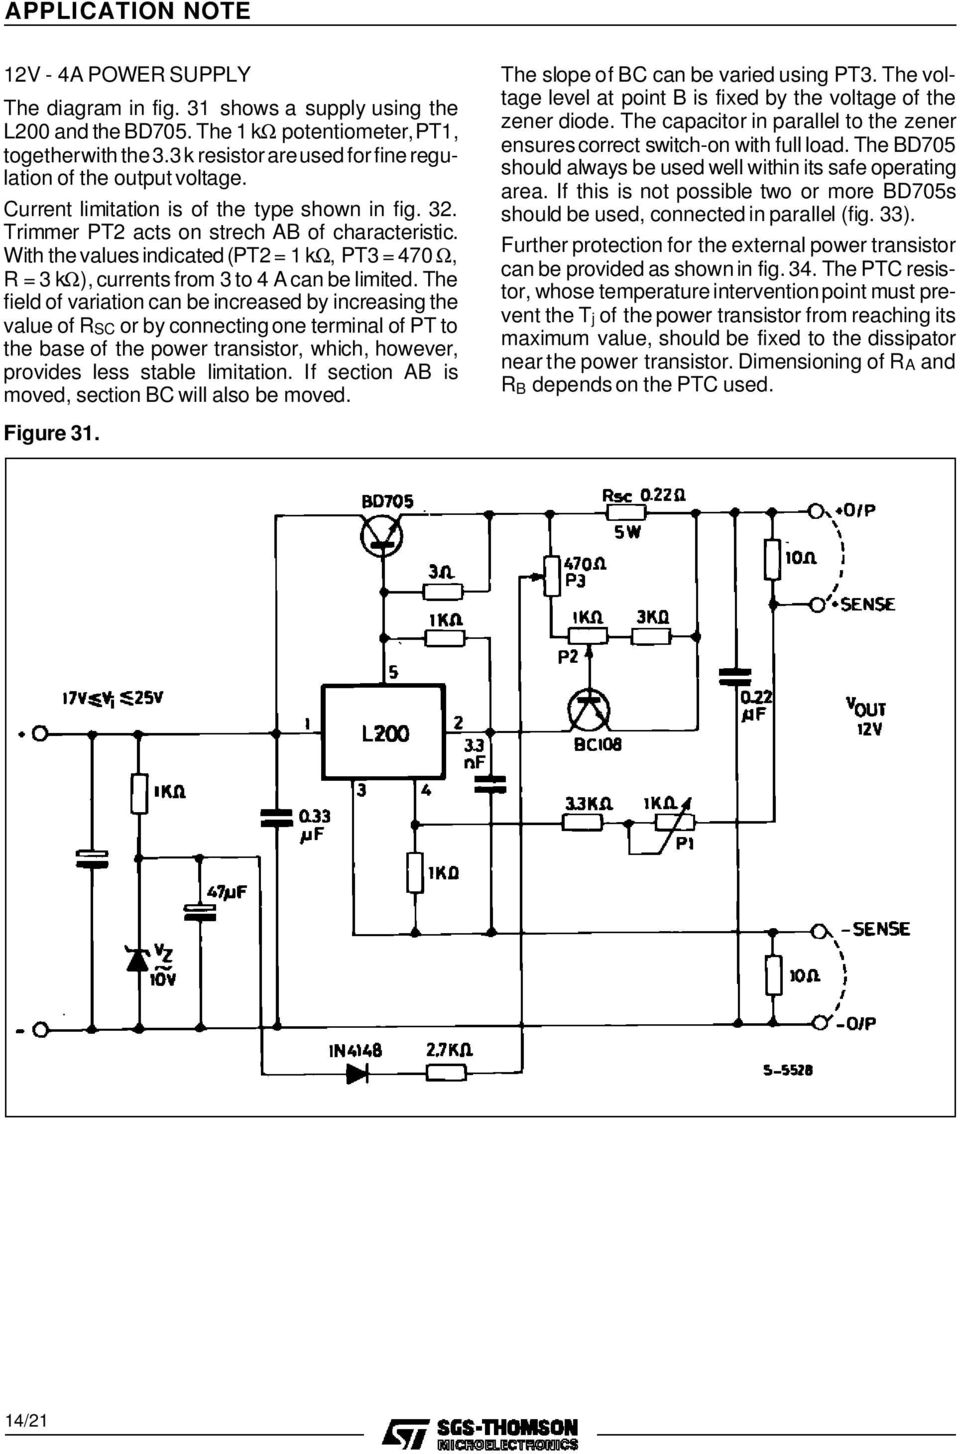 A Designer S Guide To The L200 Voltage Regulator Pdf Picture Of Versatile With Lm317 Field Variation Can Be Increased By Increasing Value Rsc Or Connecting